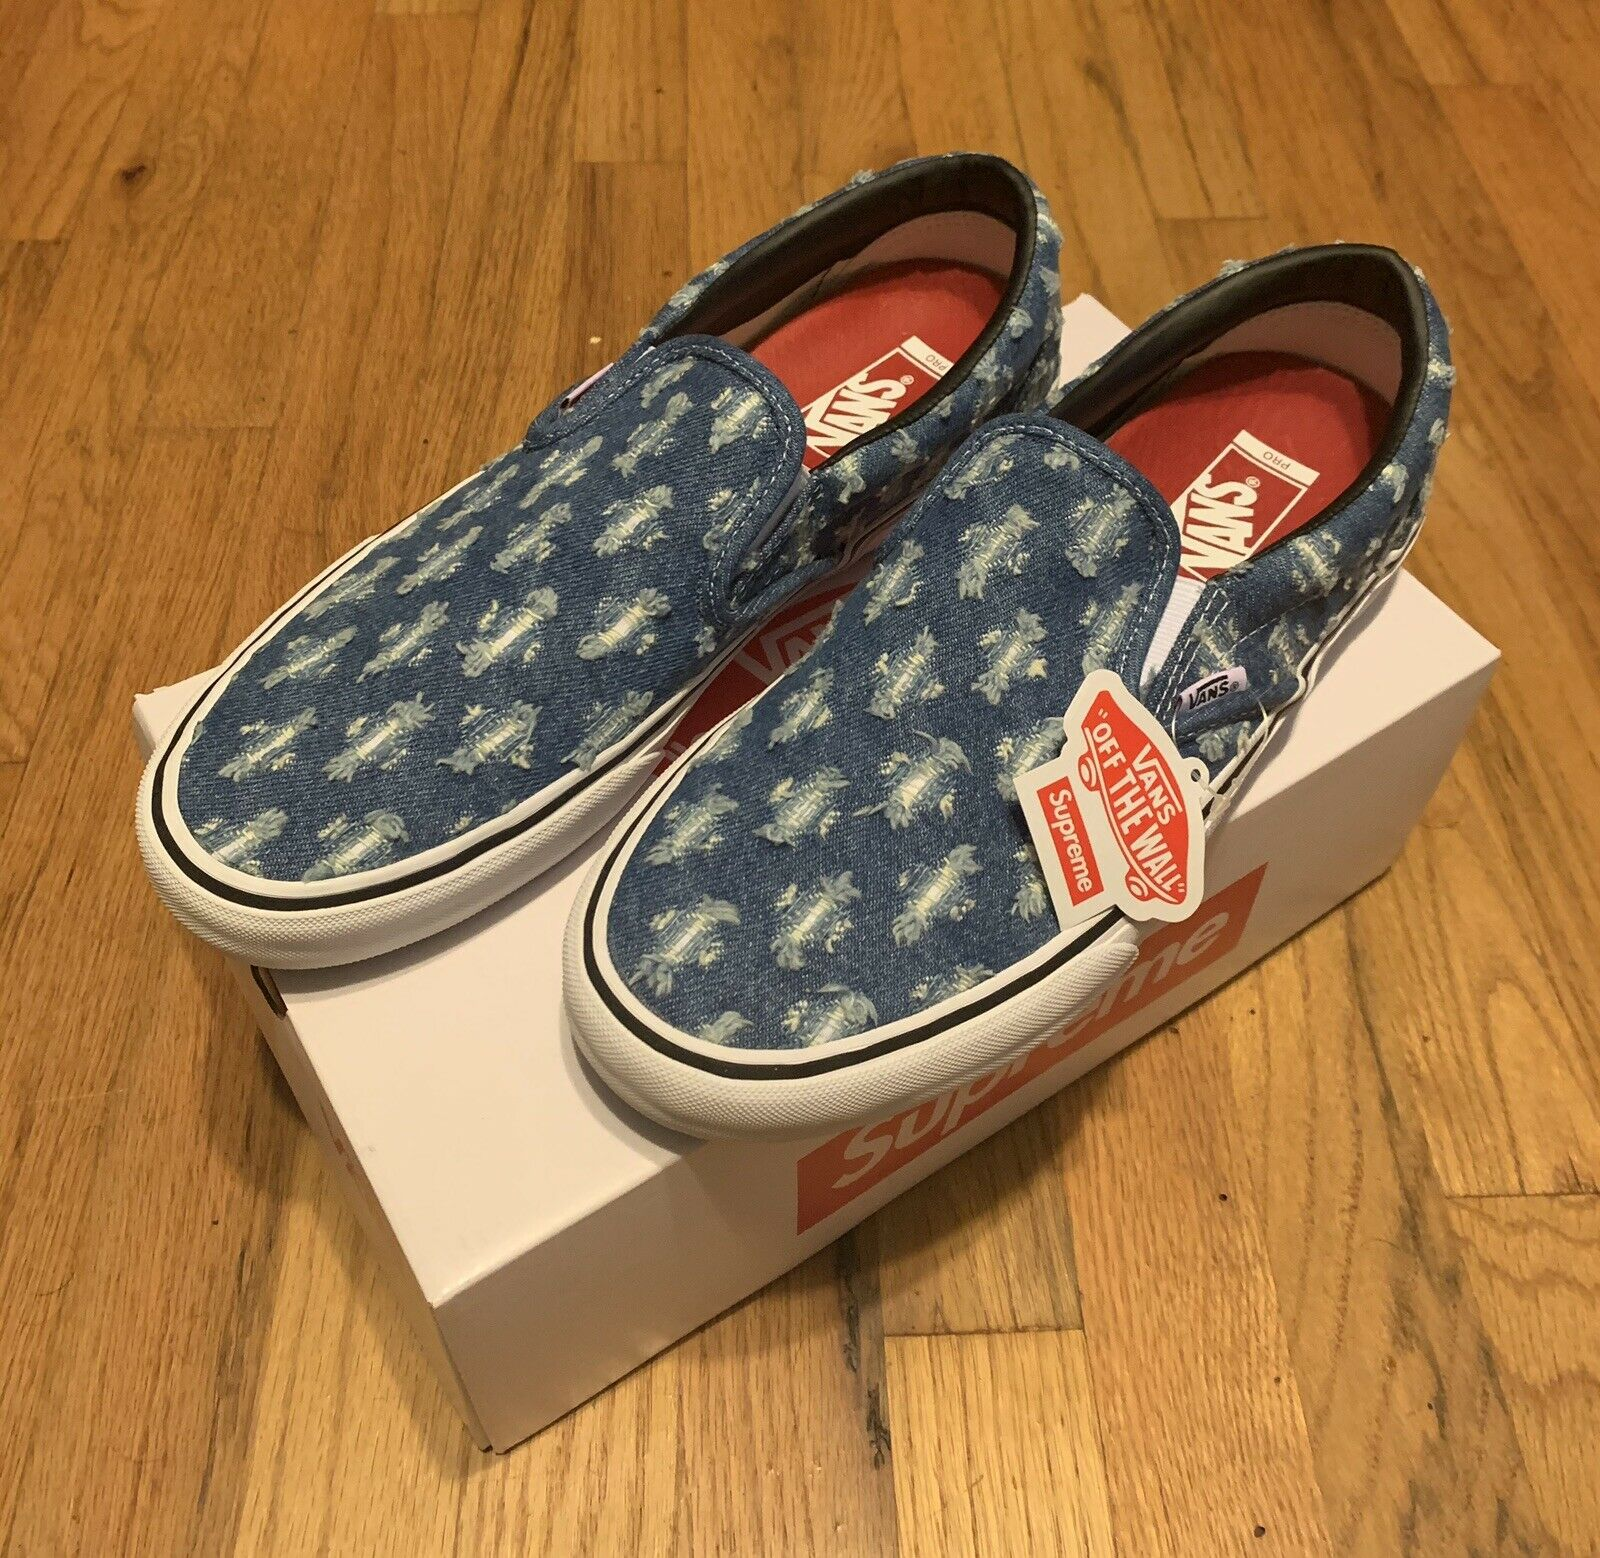 Vans Slip On Supreme Hole Punch Denim Blue